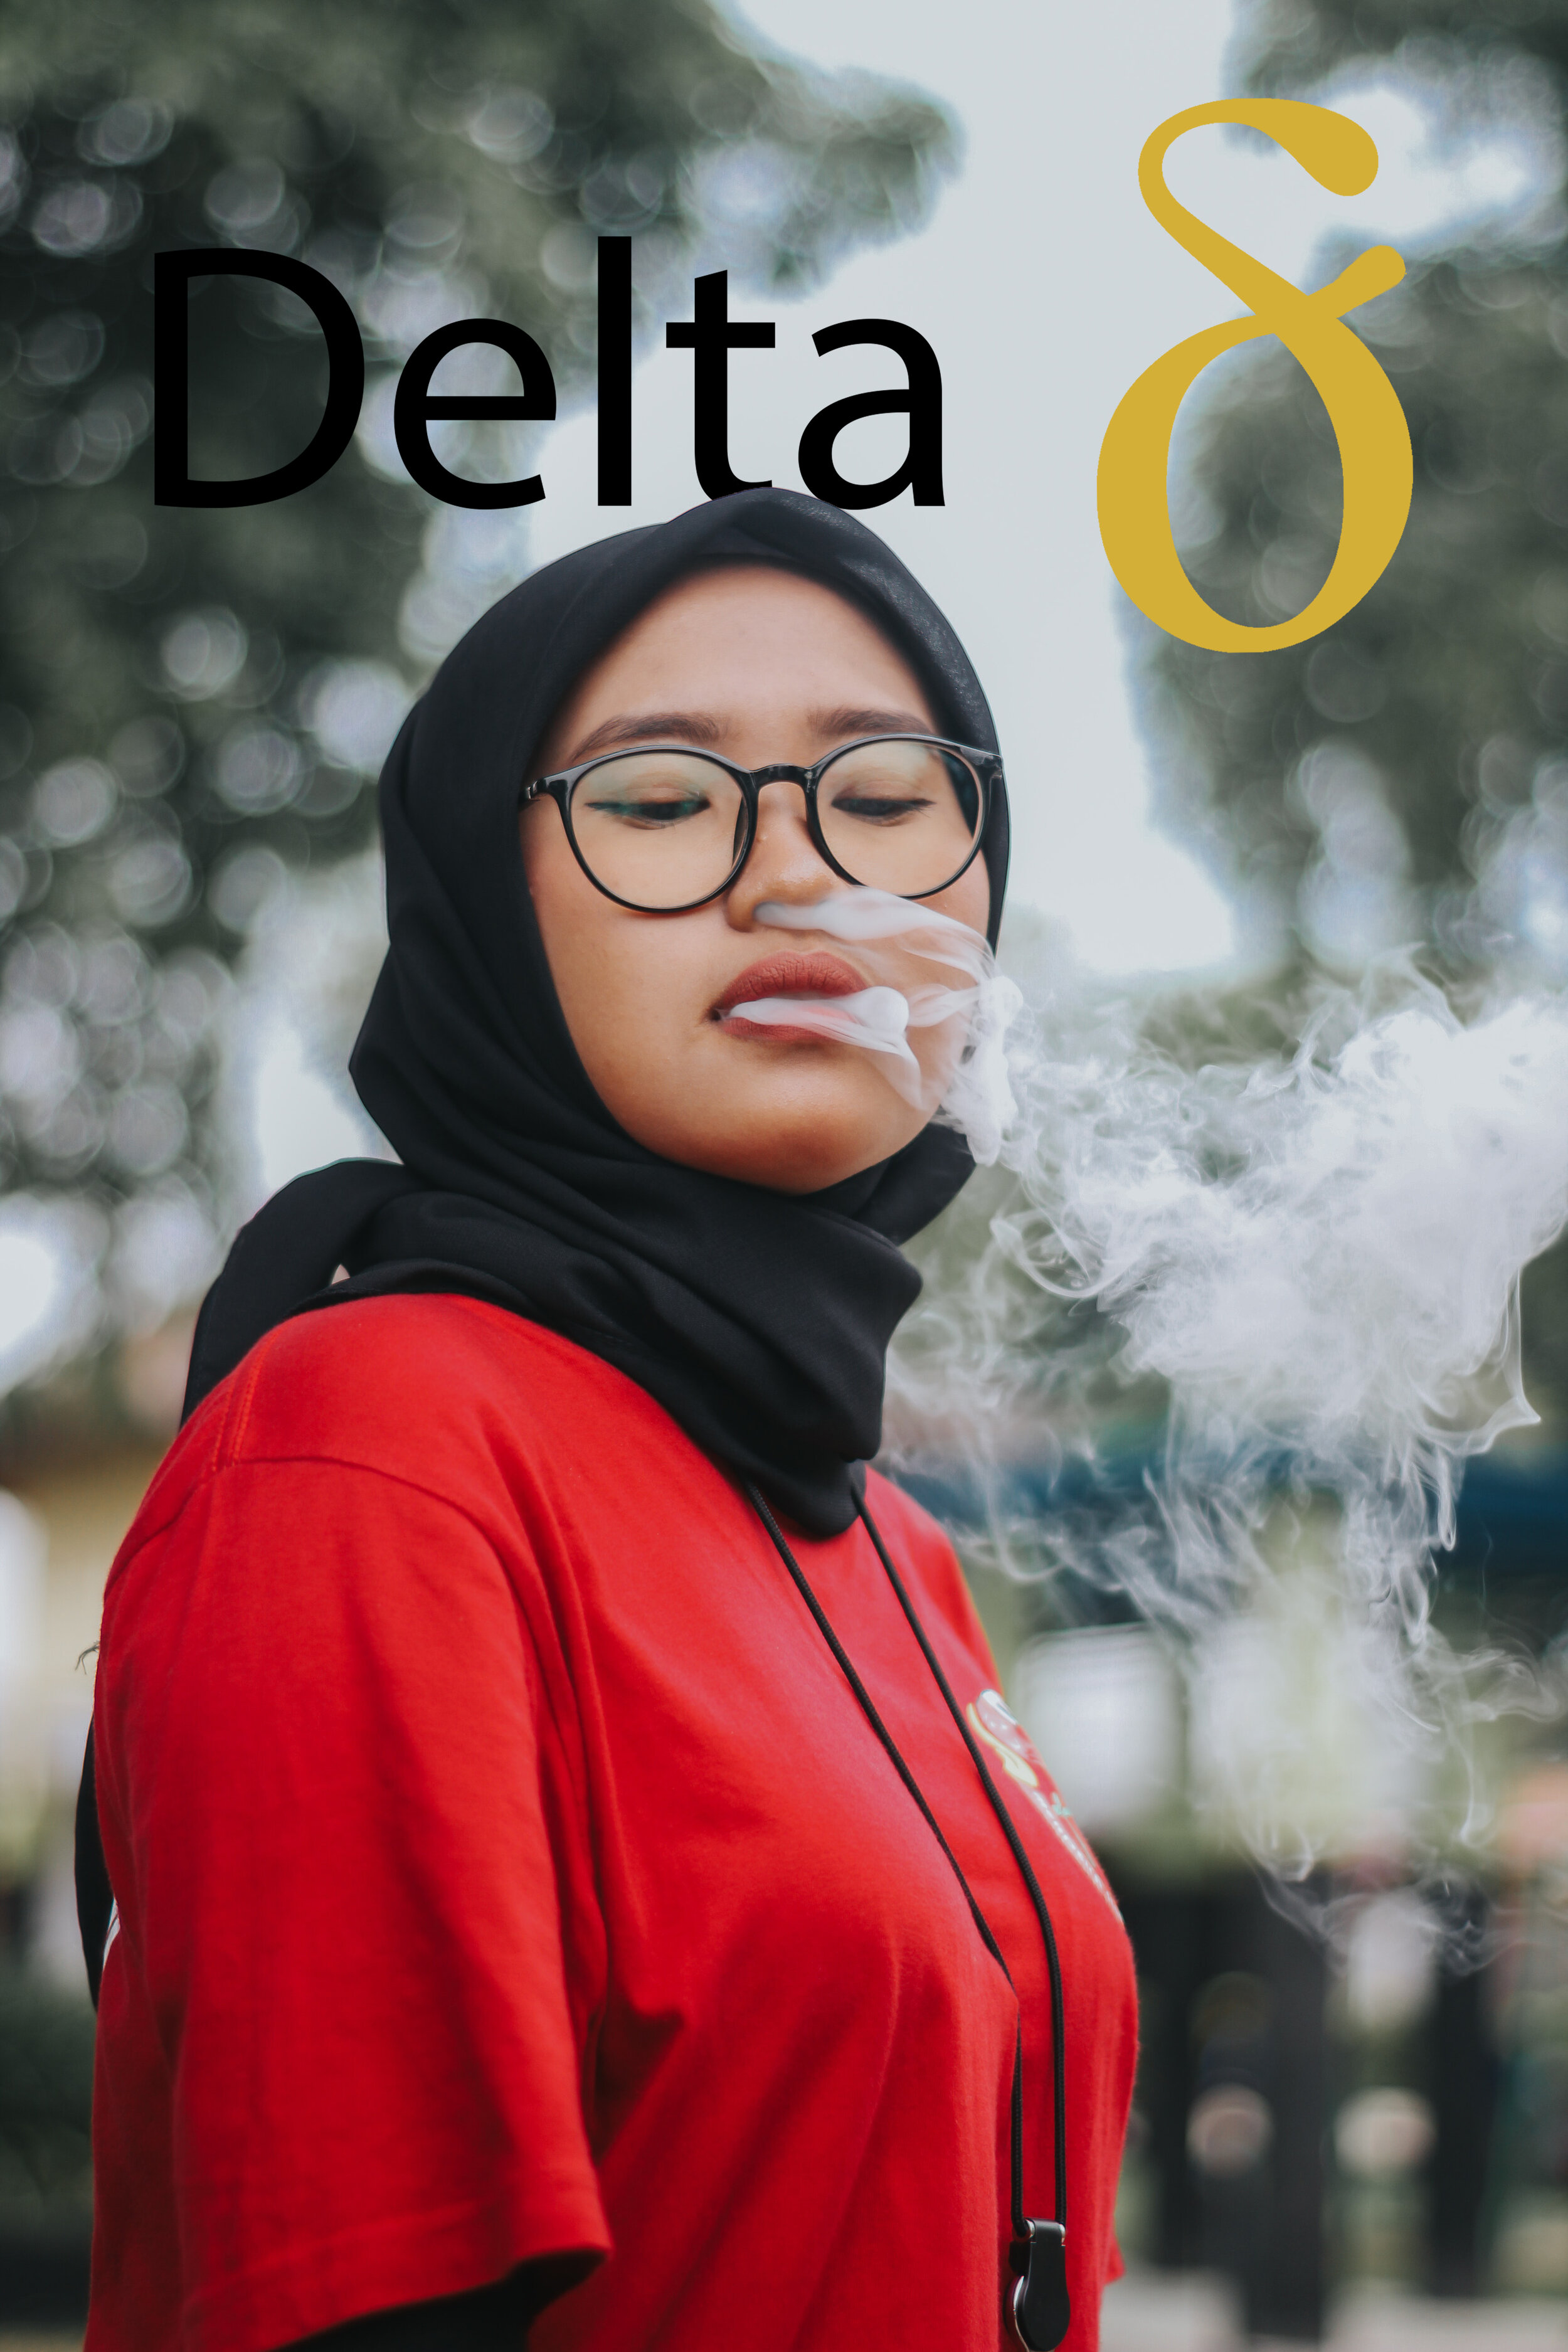 Consumer Safety - Delta 8 believes that consumer saftey is not only our number priority but also the number one propriety of THC product consumers. Delta 8 will always provide consumers with simple, fast and secure ways to verify the authenticity and saftey of our products.